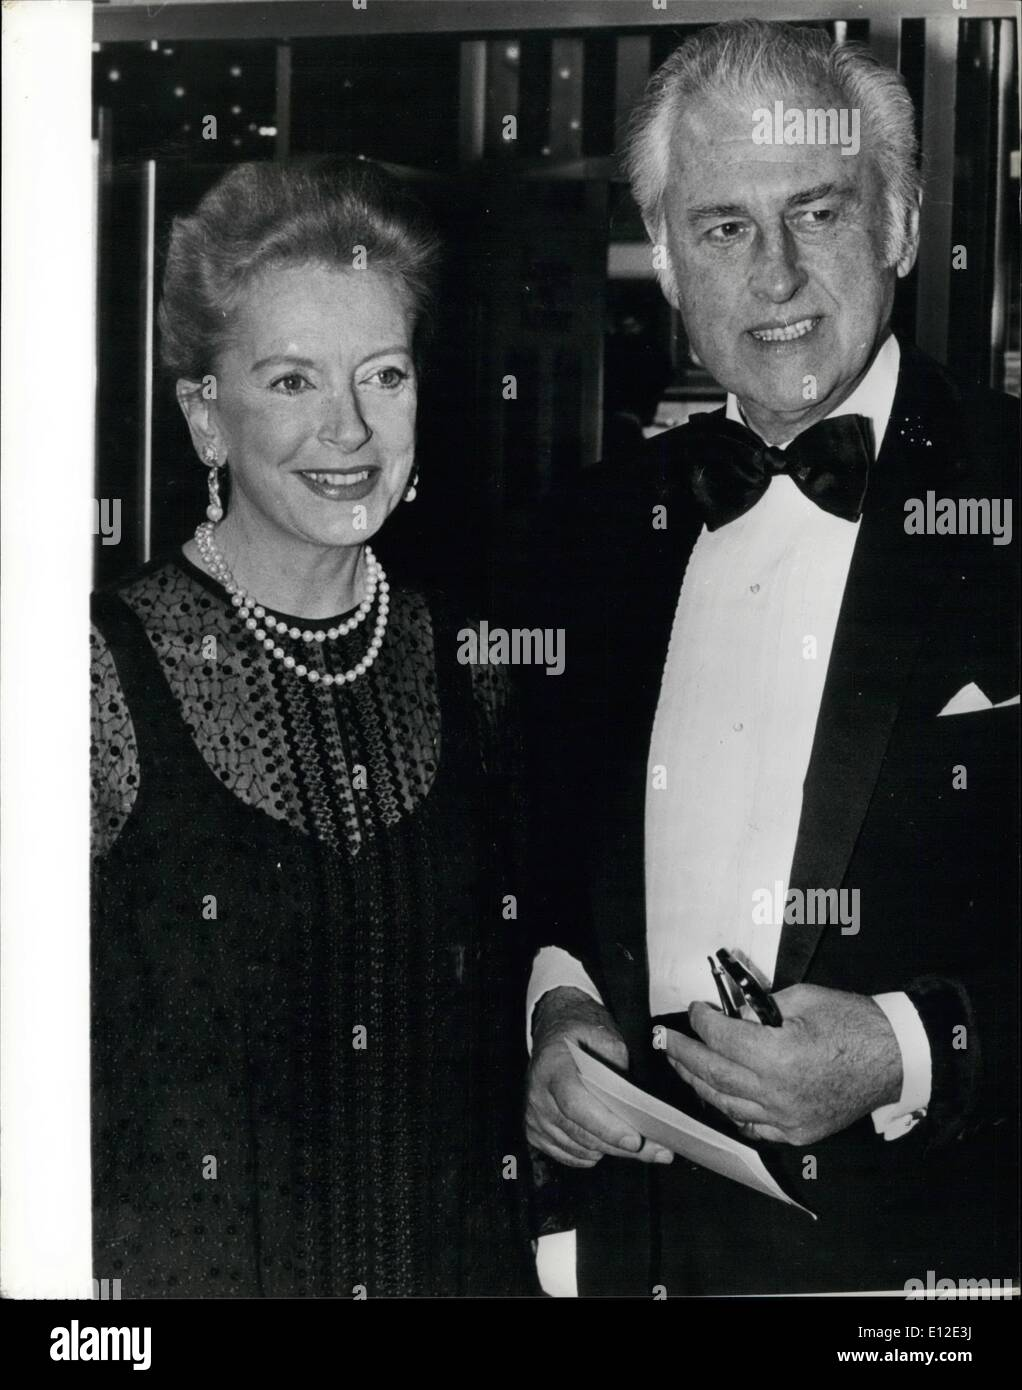 Dec. 20, 2011 - Stewart Granger & Deborah Kerr at Royal Film Première A galaxy of stars were present at last night's Royal Film Performance of ''Kramer vs Kramer'' which was shown in the presence of the Queen and Prince Phillip. Among the guest celebrities were Stewart Granger and Deborah Kerr. Photo Shows:- Stewart Granger and Deborah Kerr at last night's première at the Odeon, Leicester Square. - Stock Image